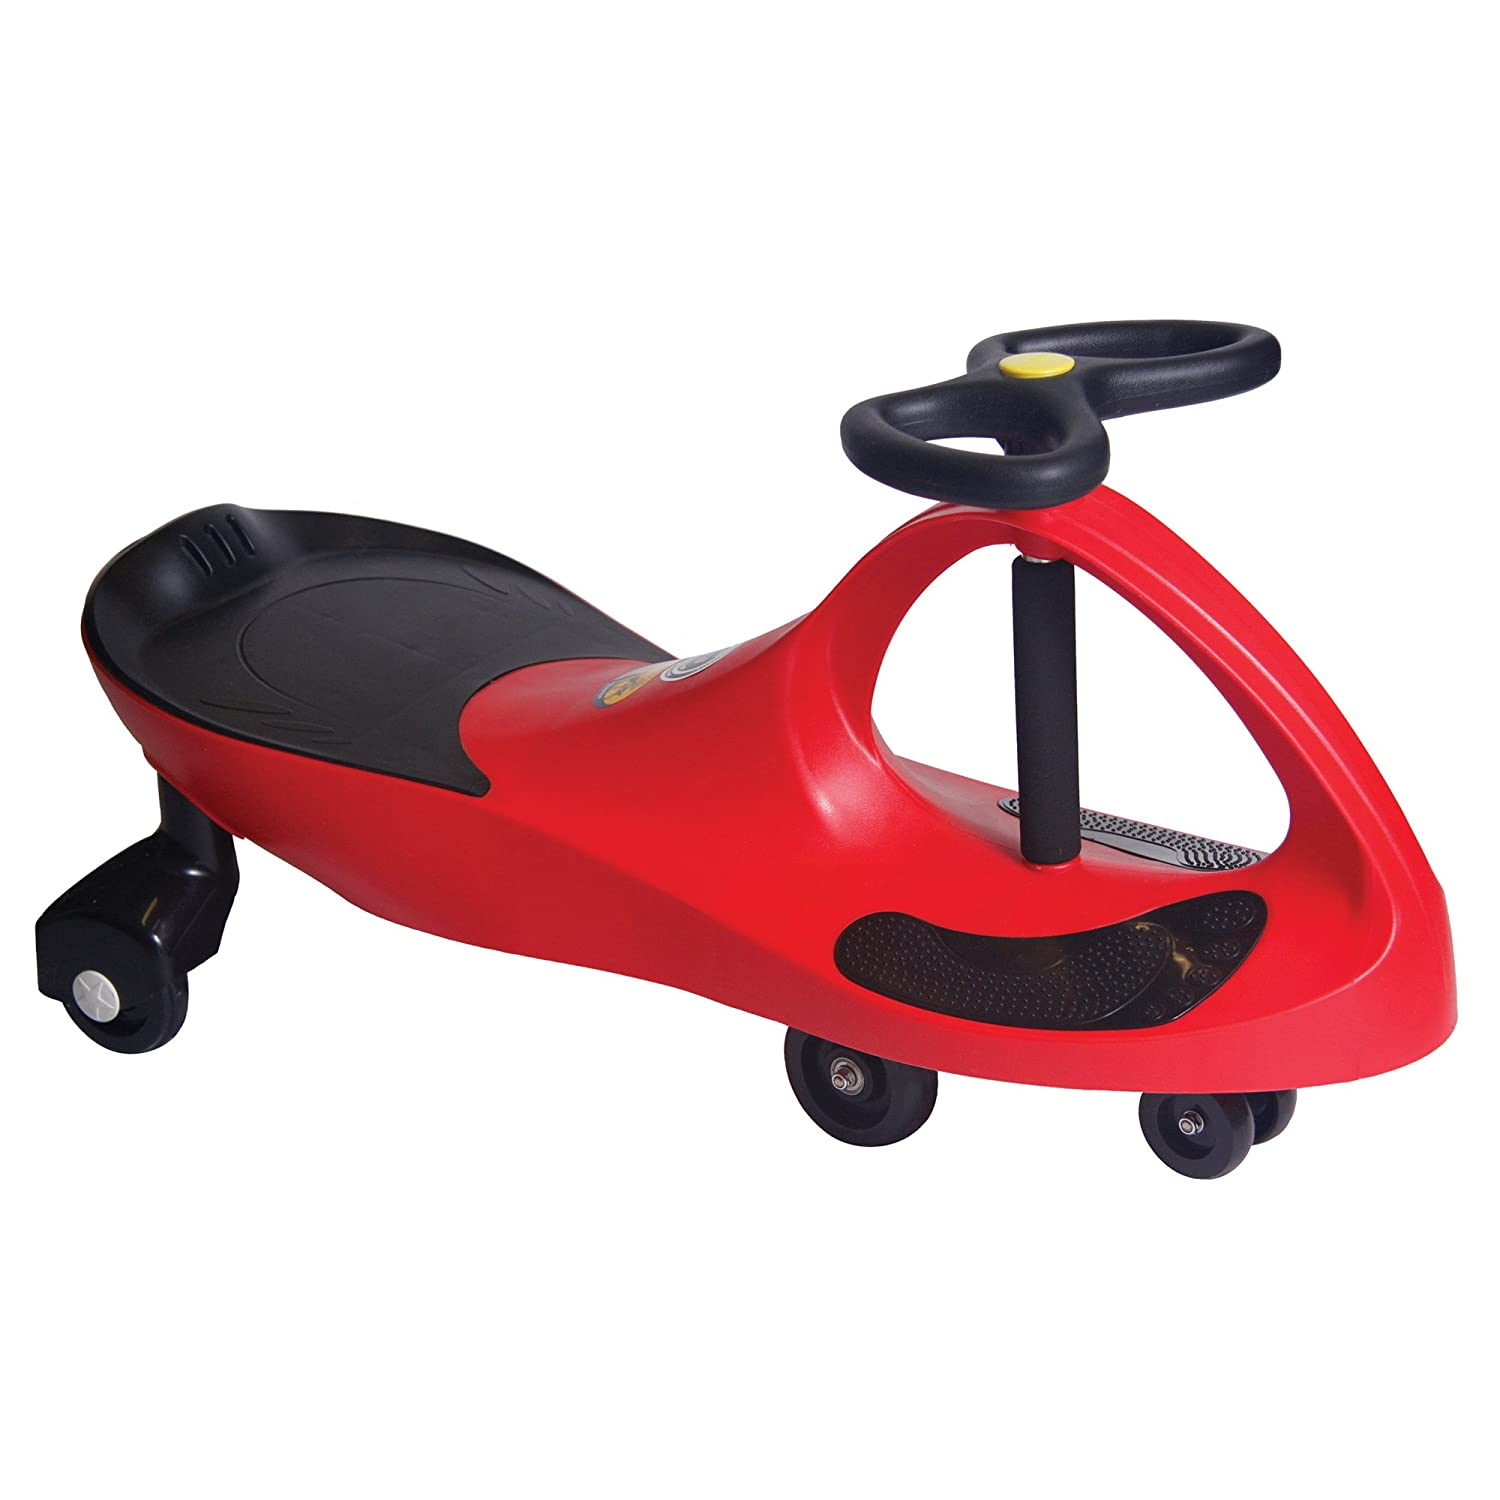 PlasmaCar The Original by PlaSmart – Red – Ride On Toy, Ages 3 yrs and Up, No batteries, gears, or pedals, Twist, Turn, Wiggle for endless fun PC020